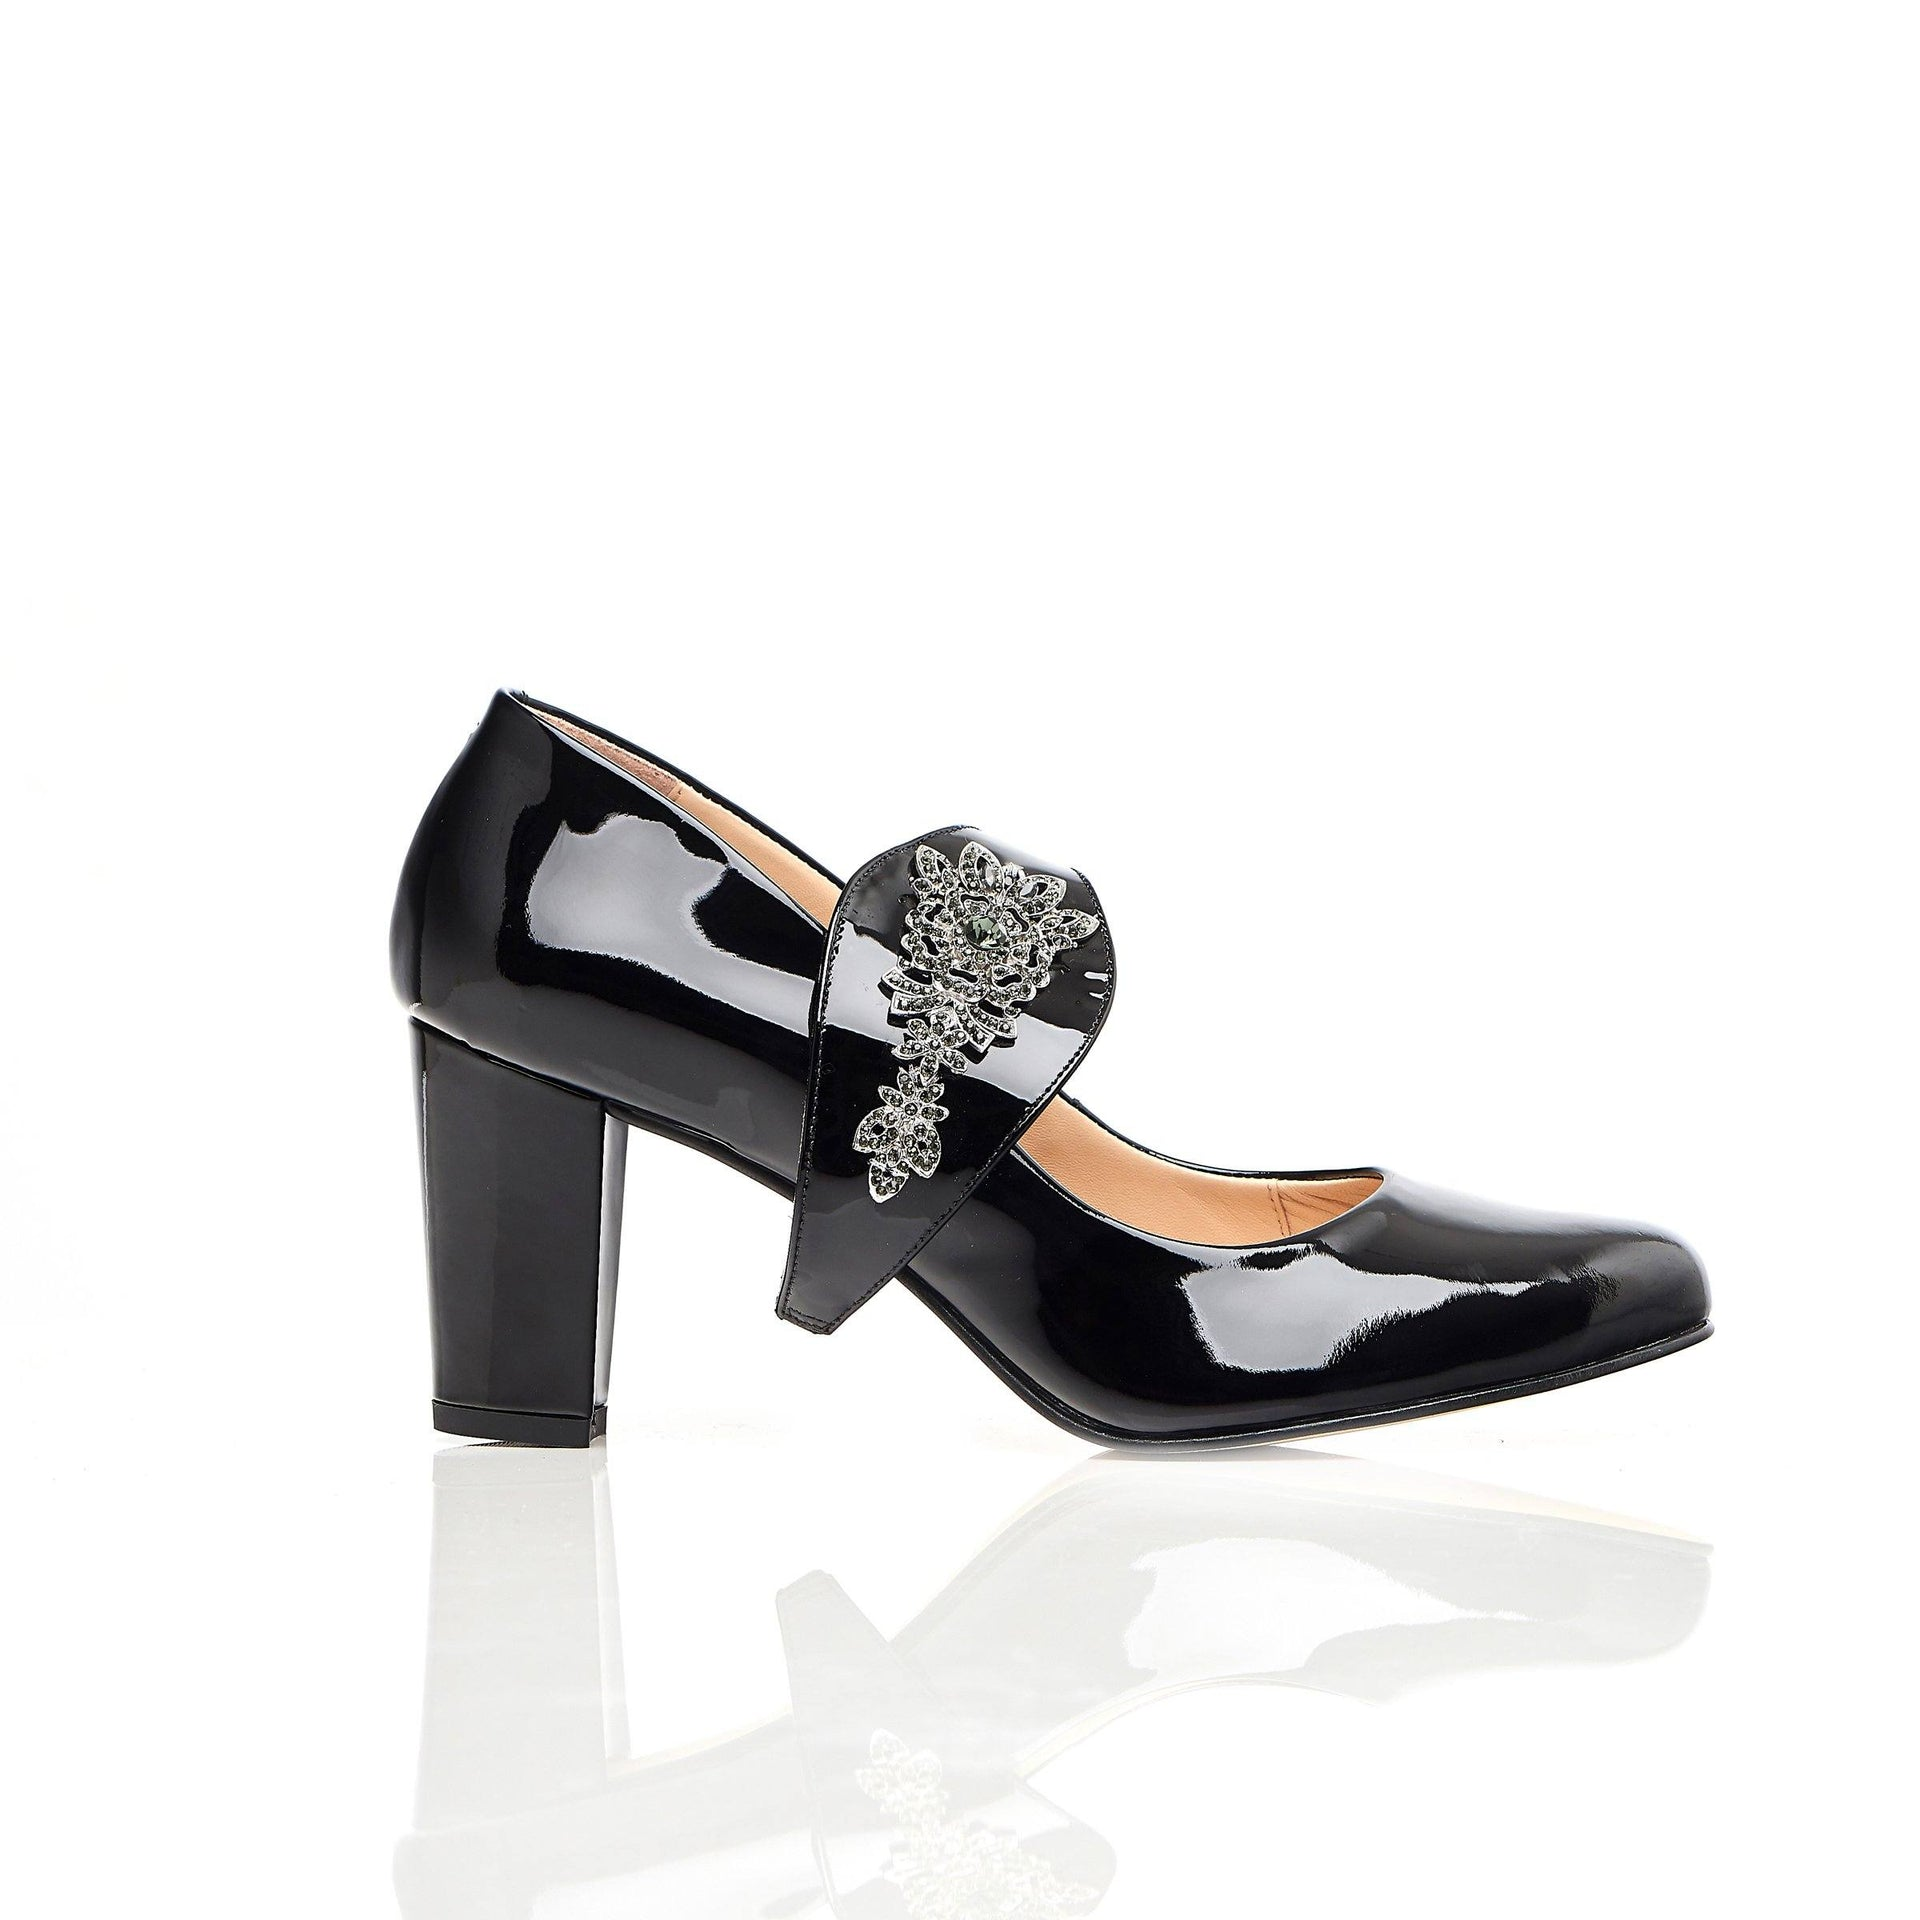 The Moon is Mine in Black Gems - Block Heels - Black Leather - Shoes by Shaherazad